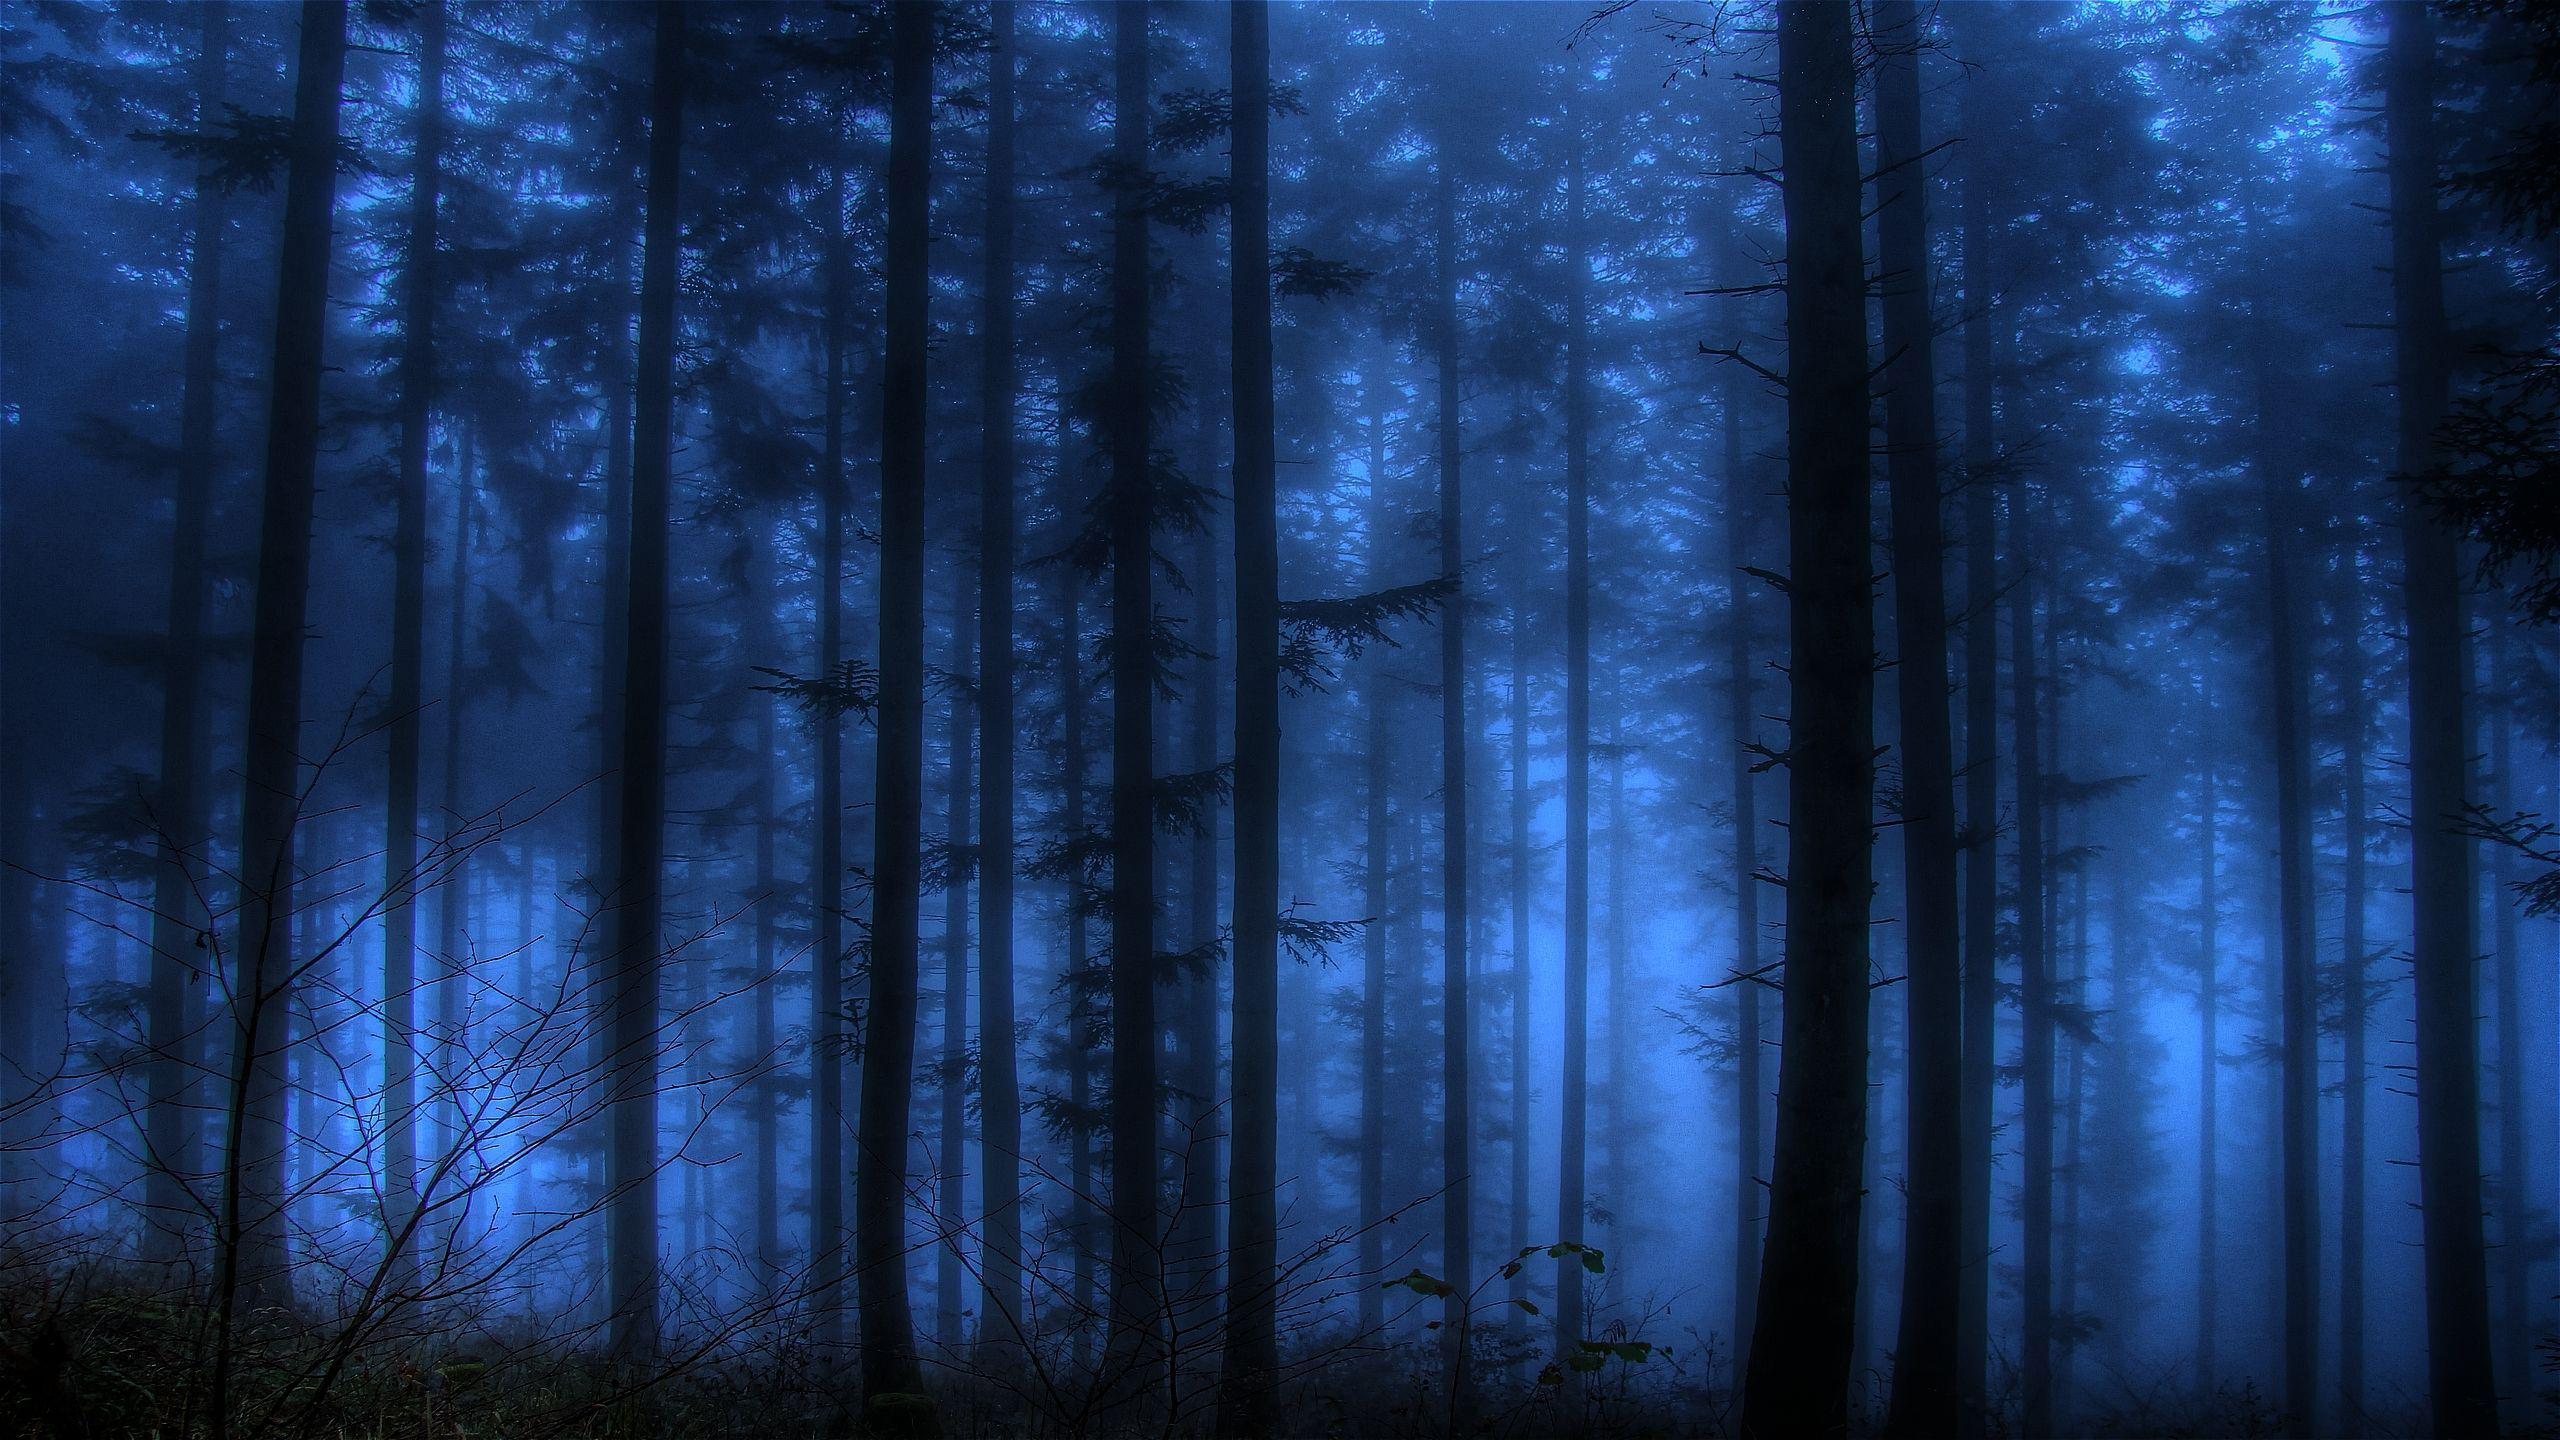 Imagespace Dark Forest Wallpaper Desktop Gmispace Com